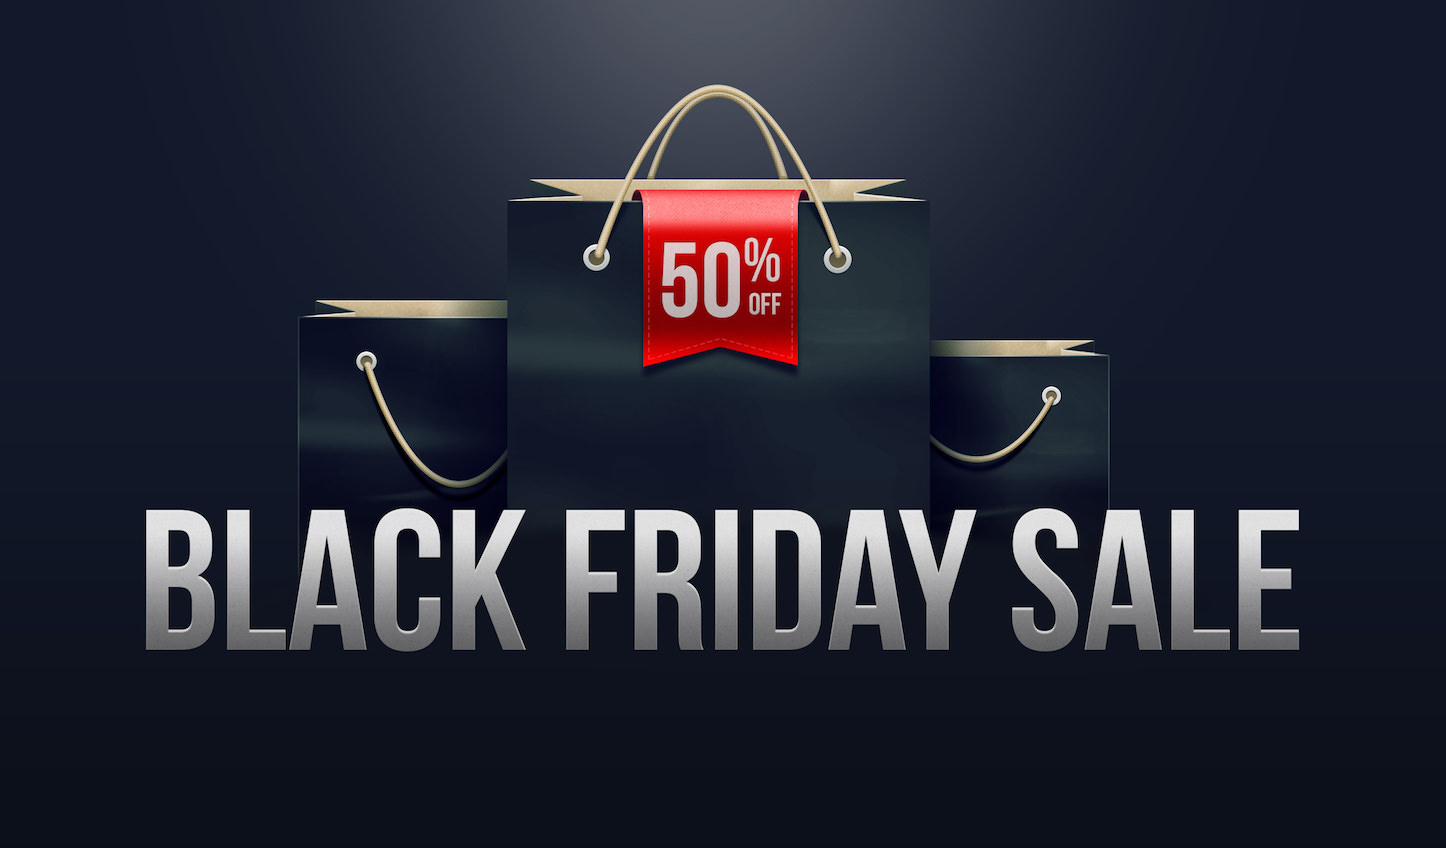 Readlle black friday sale